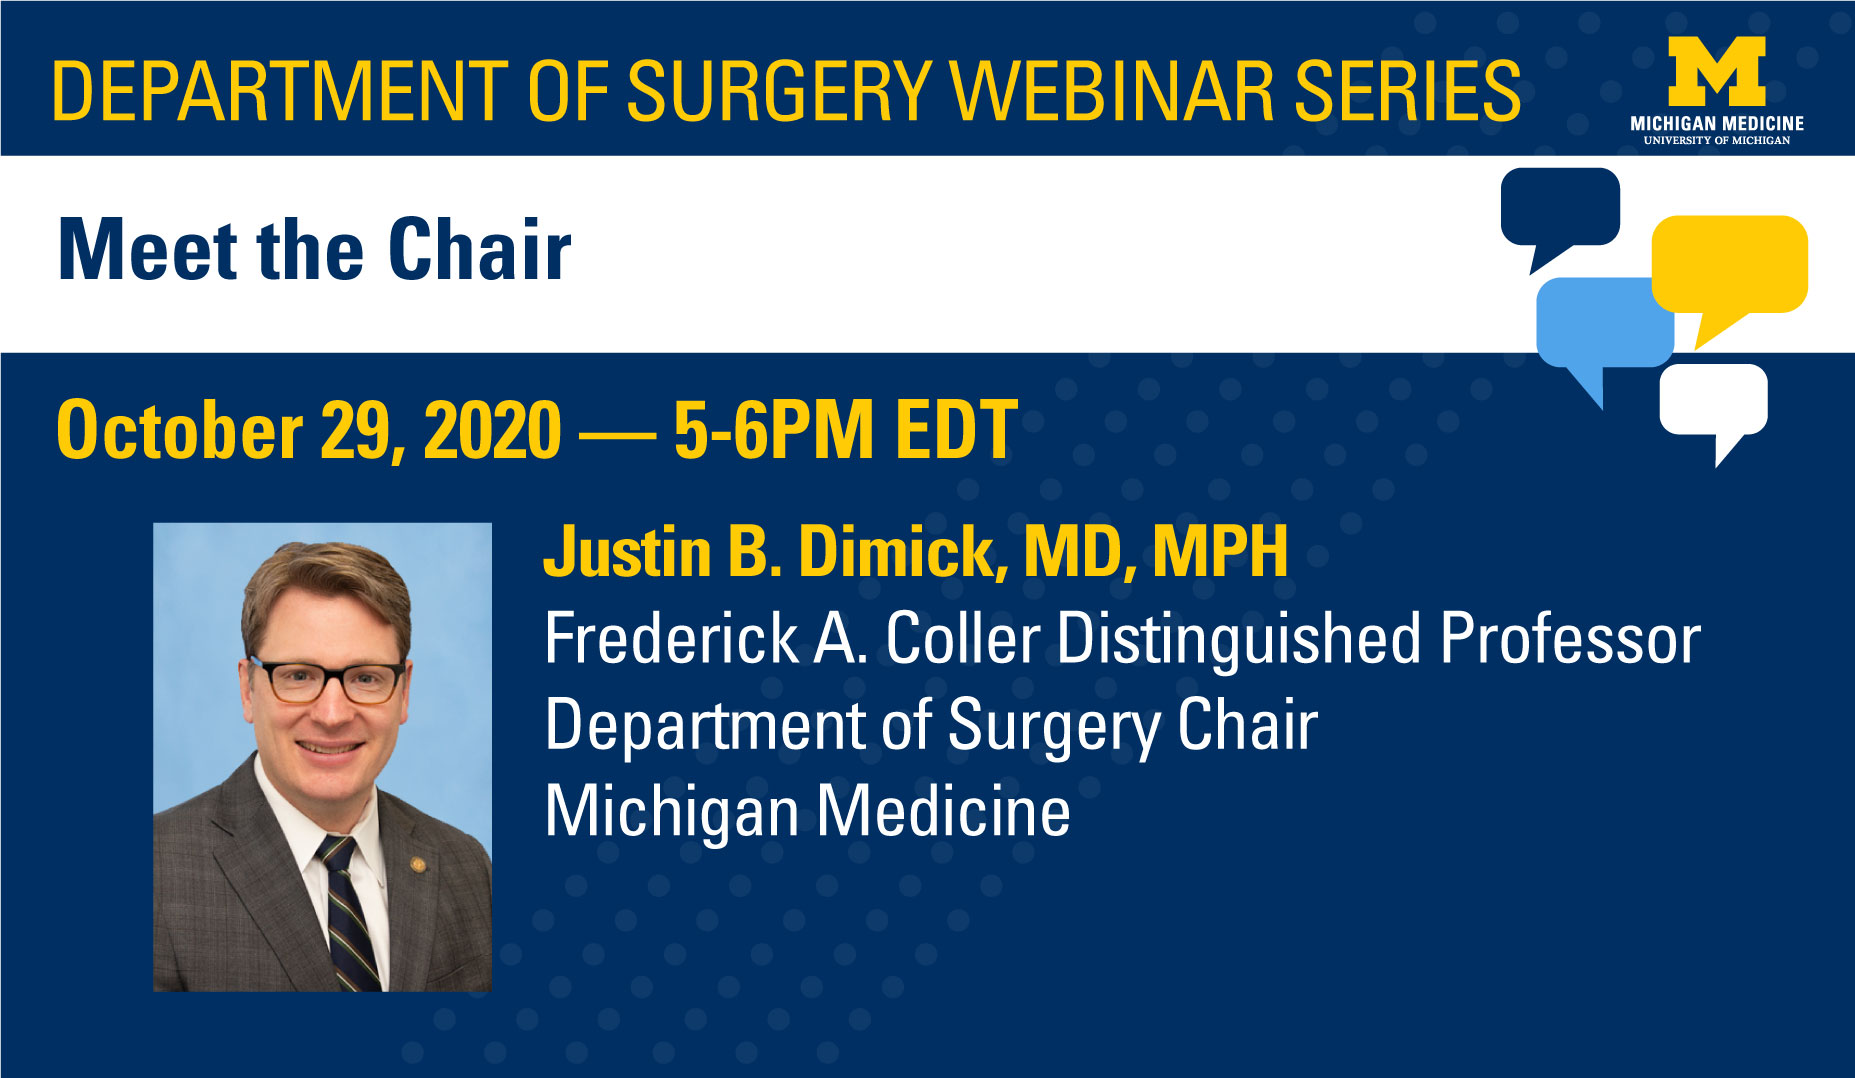 Department of Surgery Webinar Series October 29, 2020 from 5-6 PM (EDT): Meet the Chair